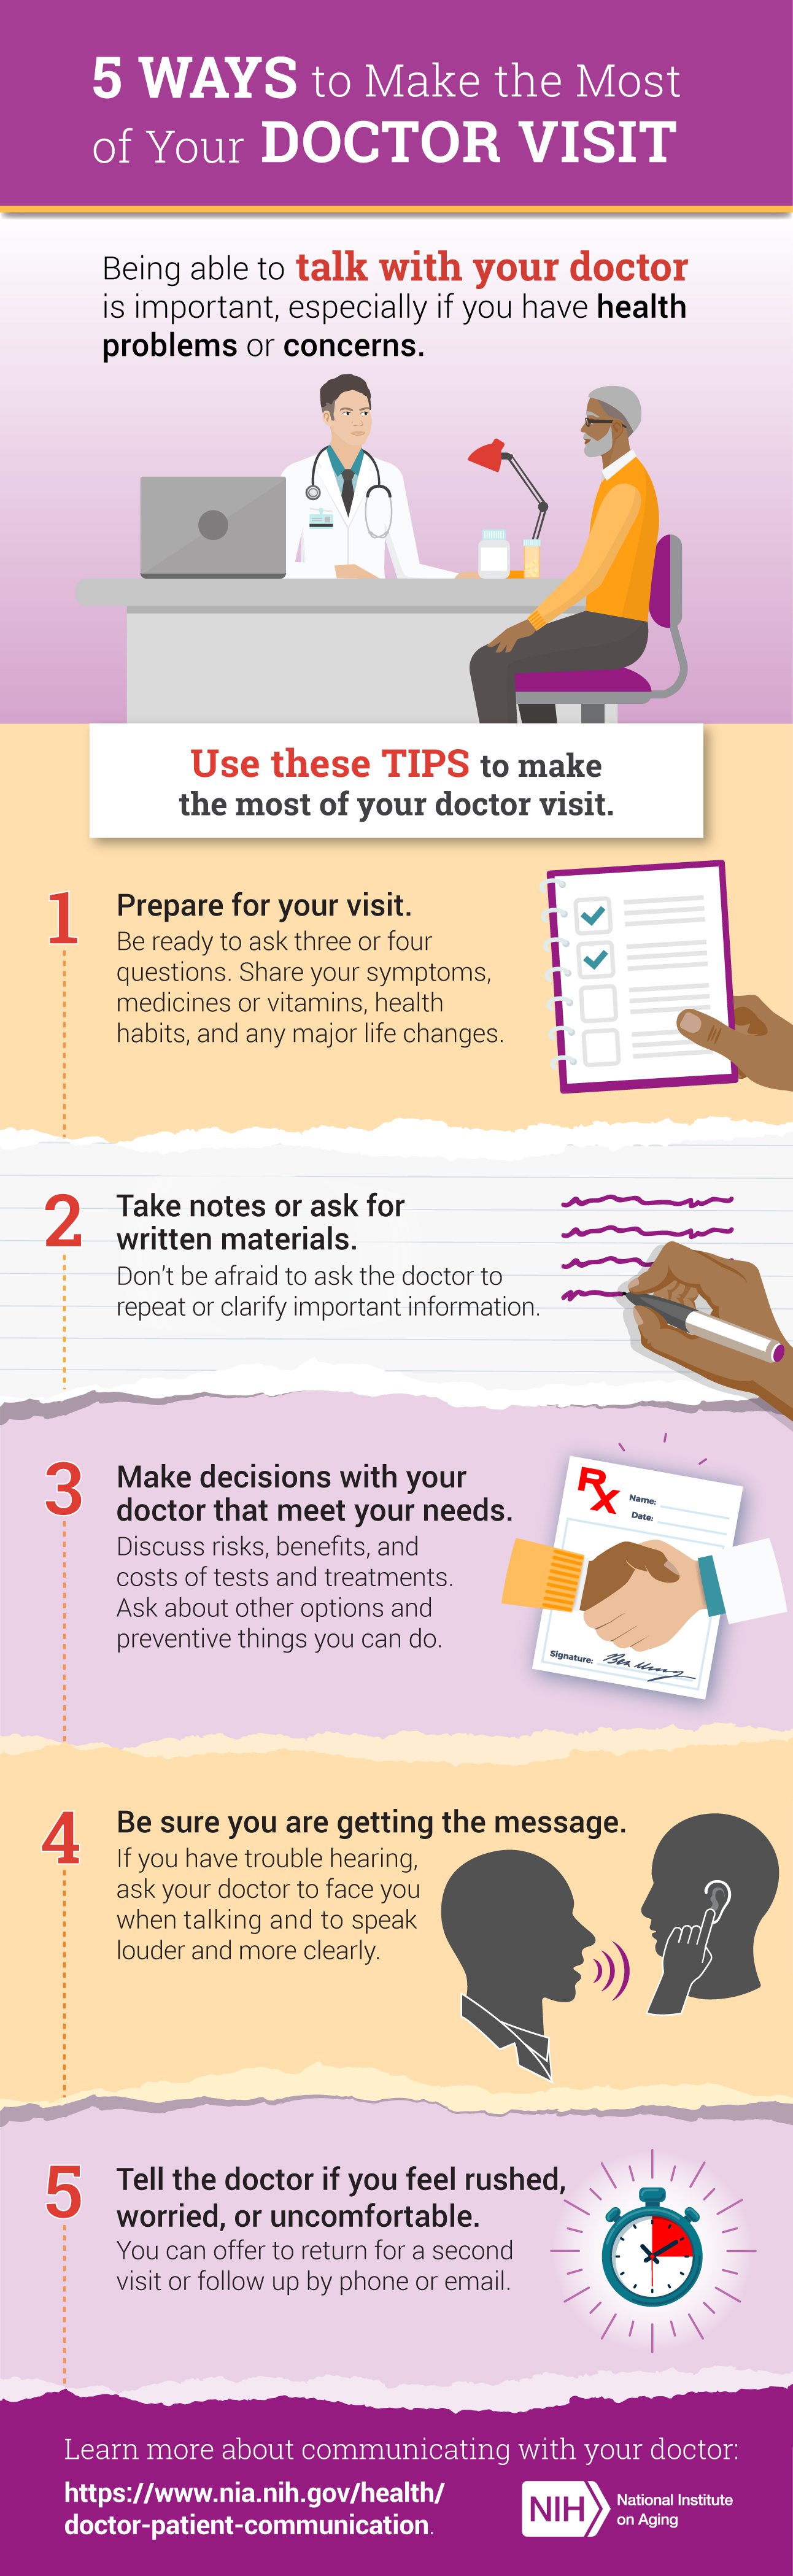 5 ways to make the most of your doctor visit infographic. Full transcript below